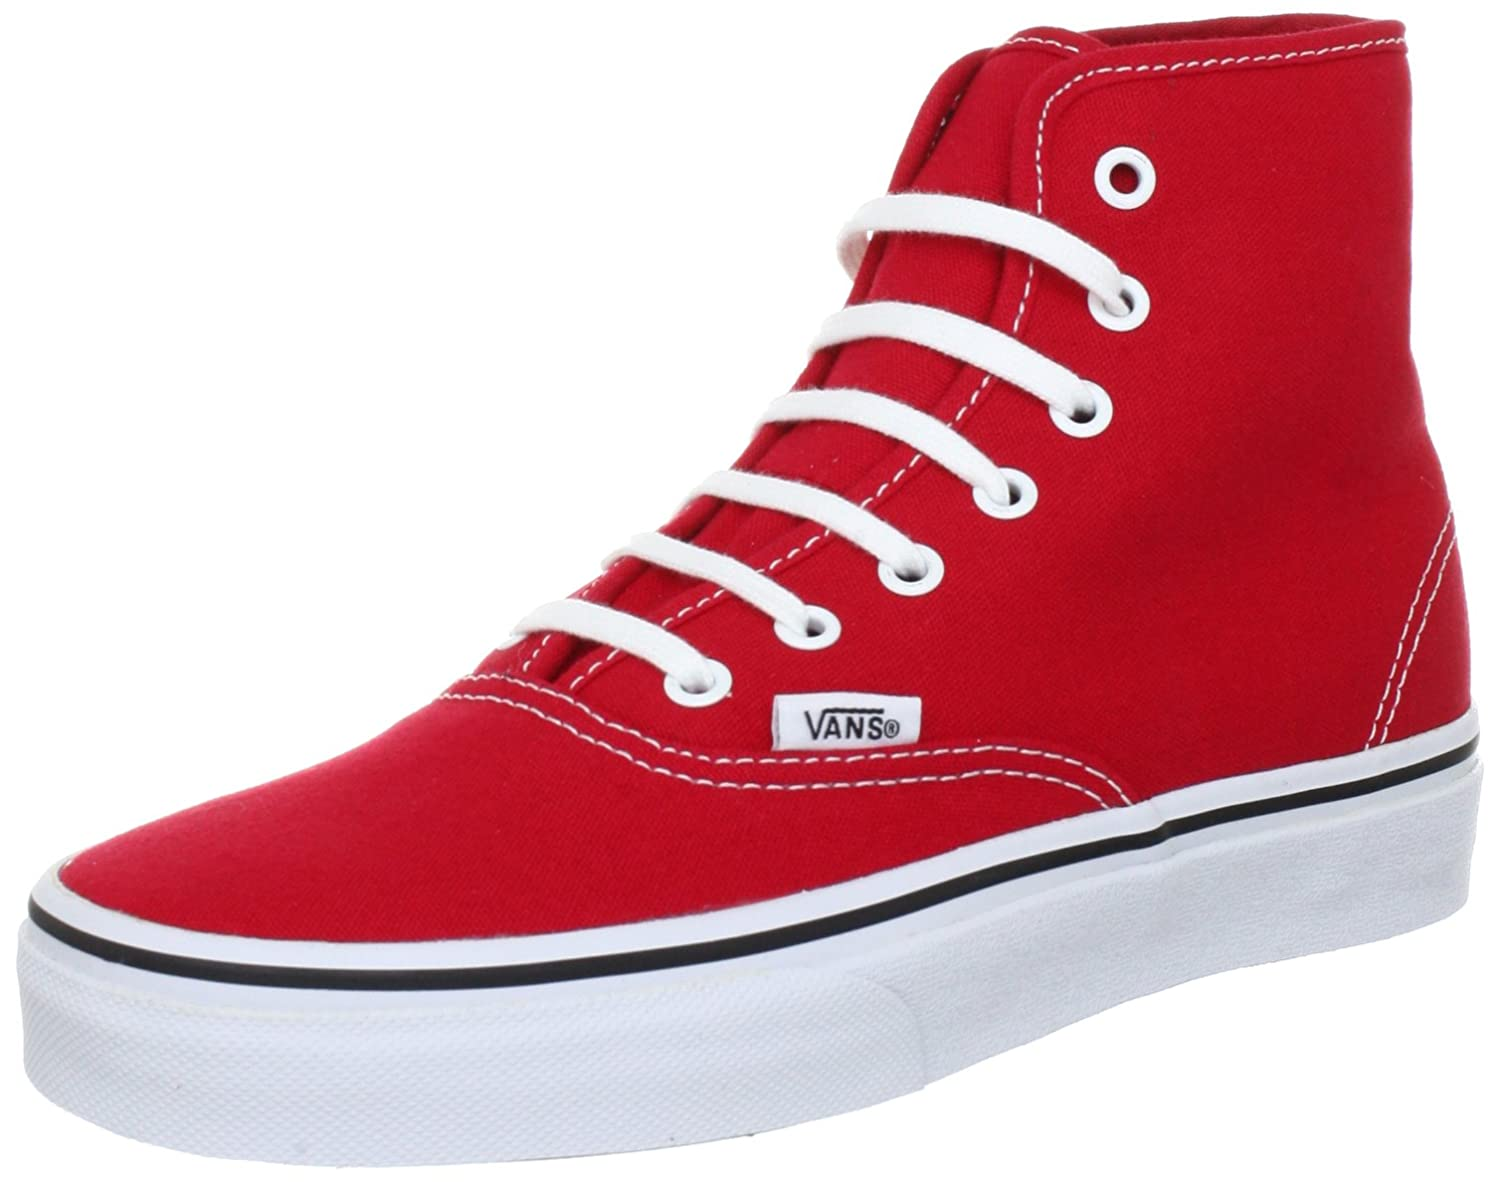 red and white high top vans